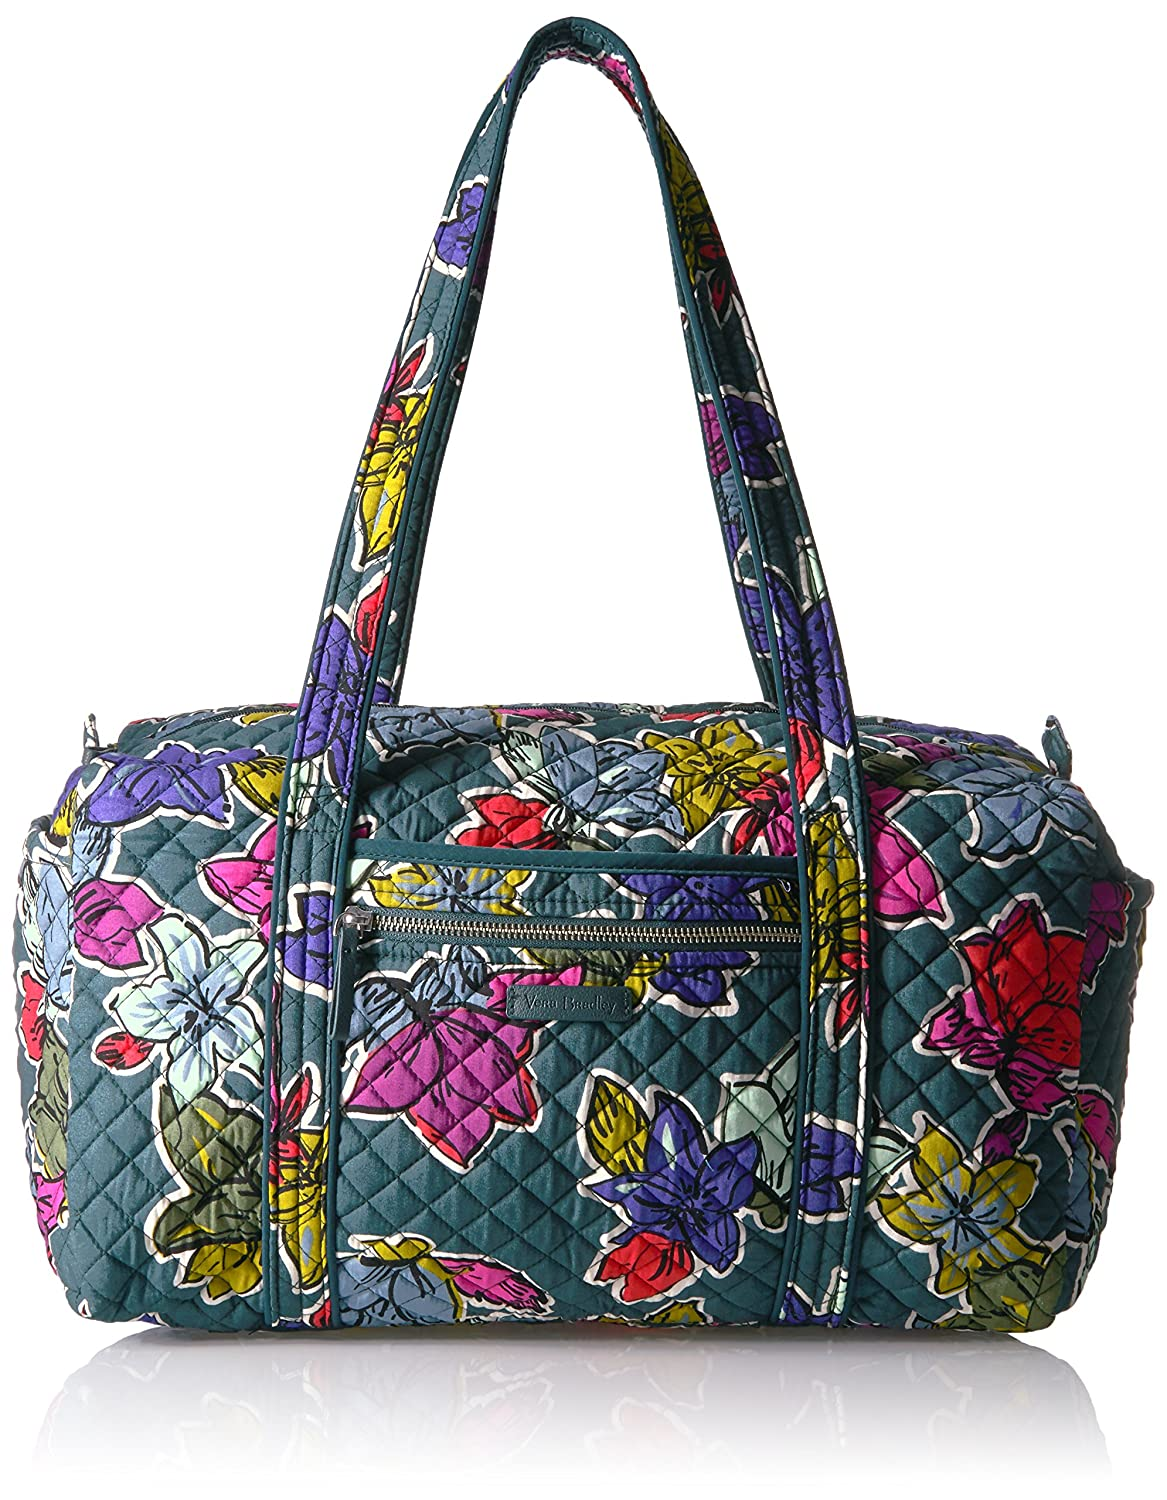 Vera Bradley Iconic Small Duffel, Signature Cotton Falling Flowers 23162